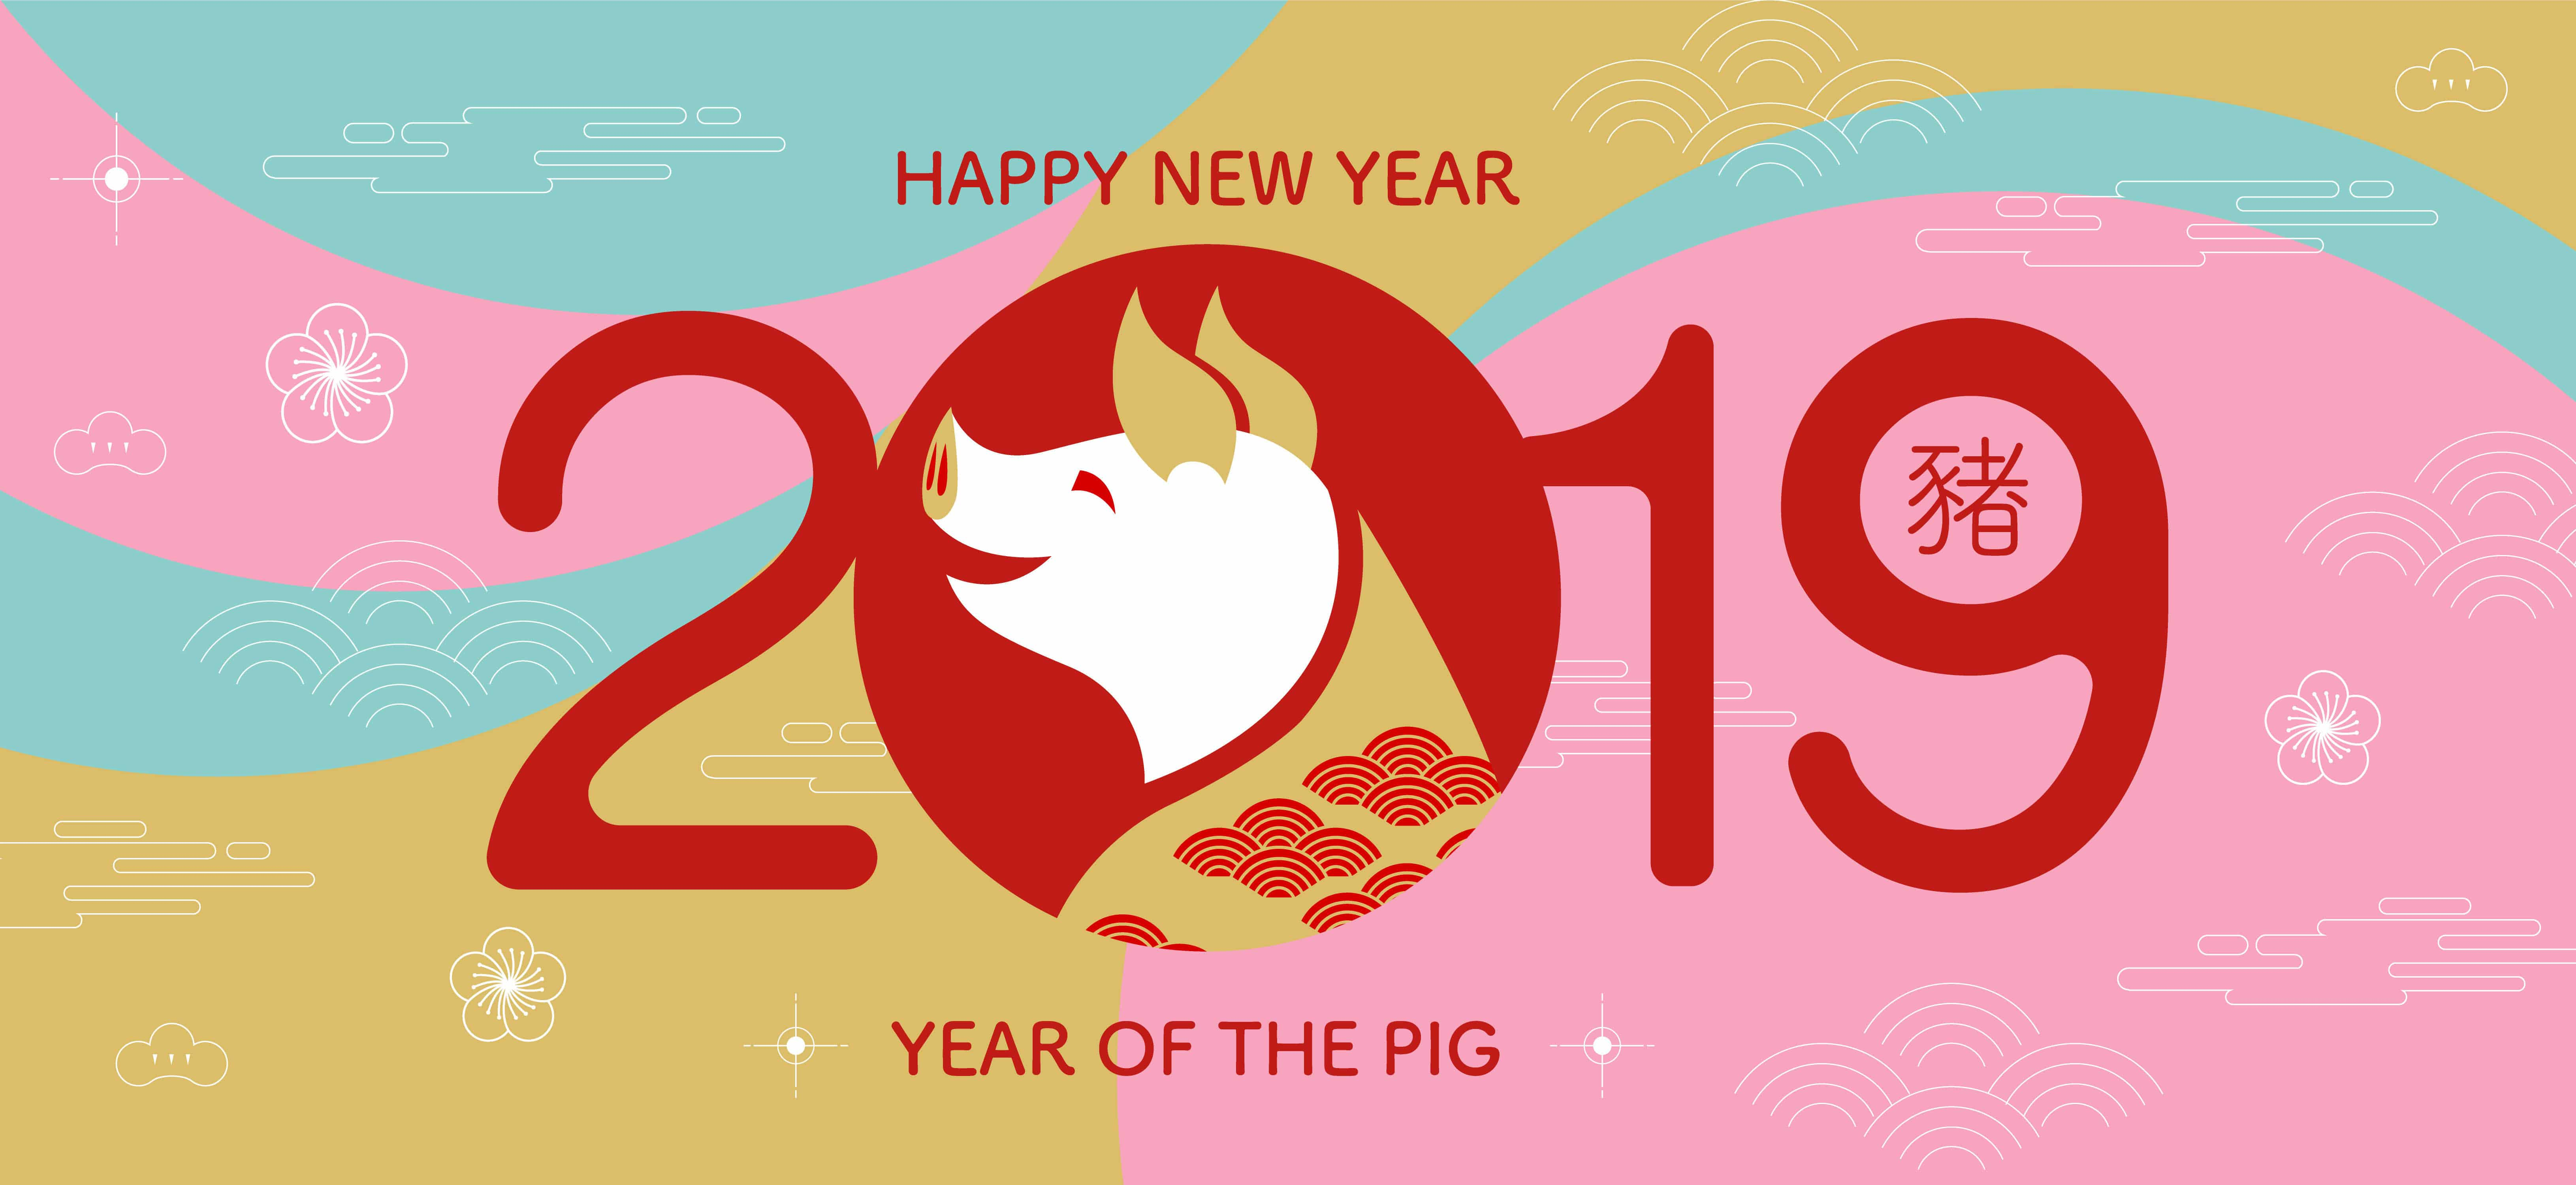 Year of the Pig Celebration WebCast Live from New York to China! 1